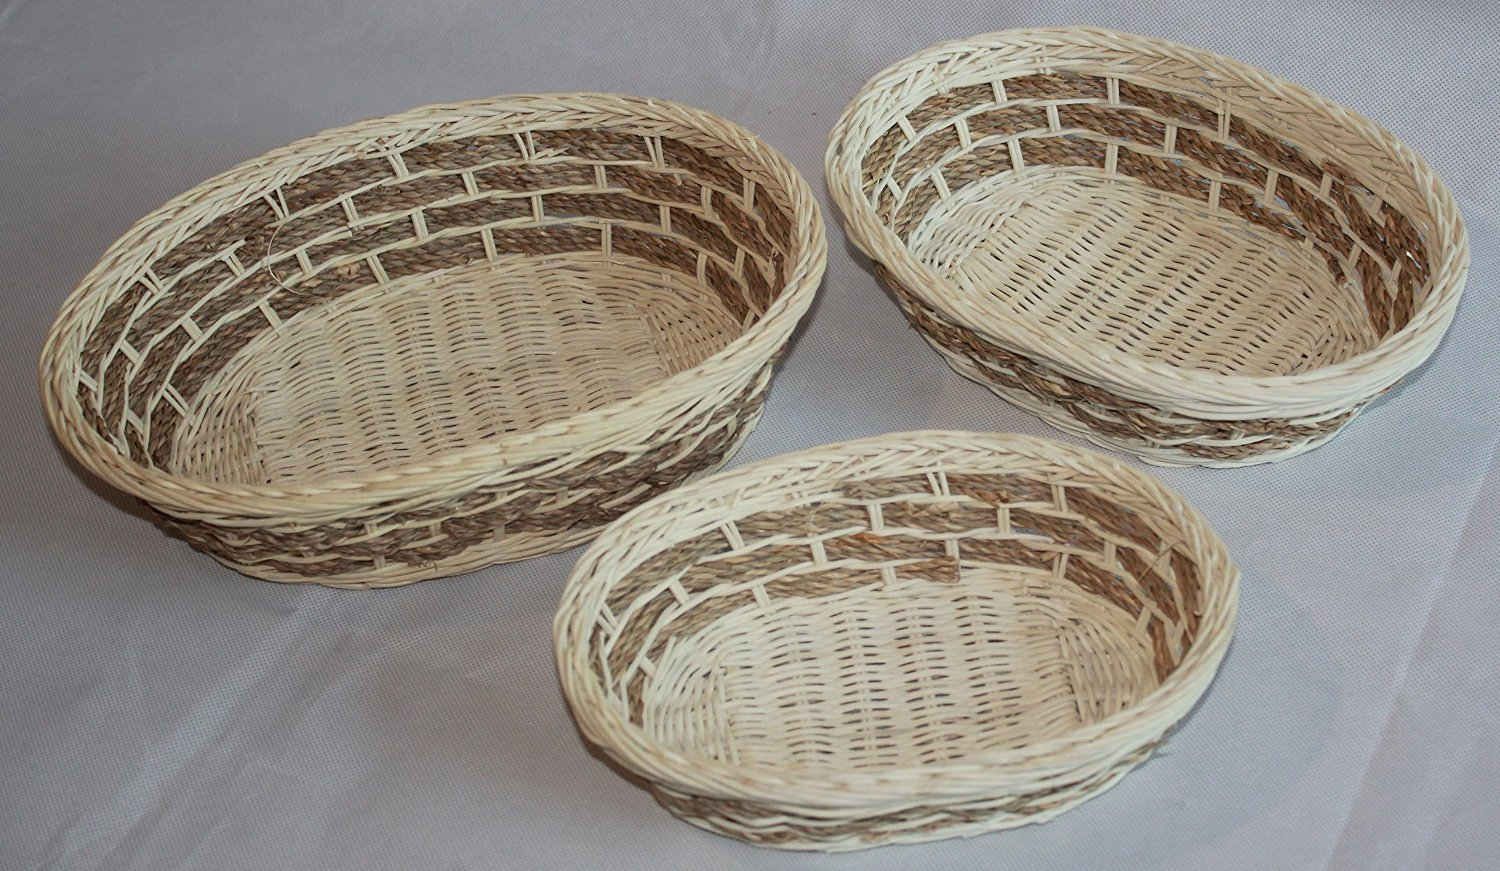 Set of 3 Spa Wicker/Rattan Bread or Storage Baskets Bins Containersin Cream and Brown Handmade By Kundum